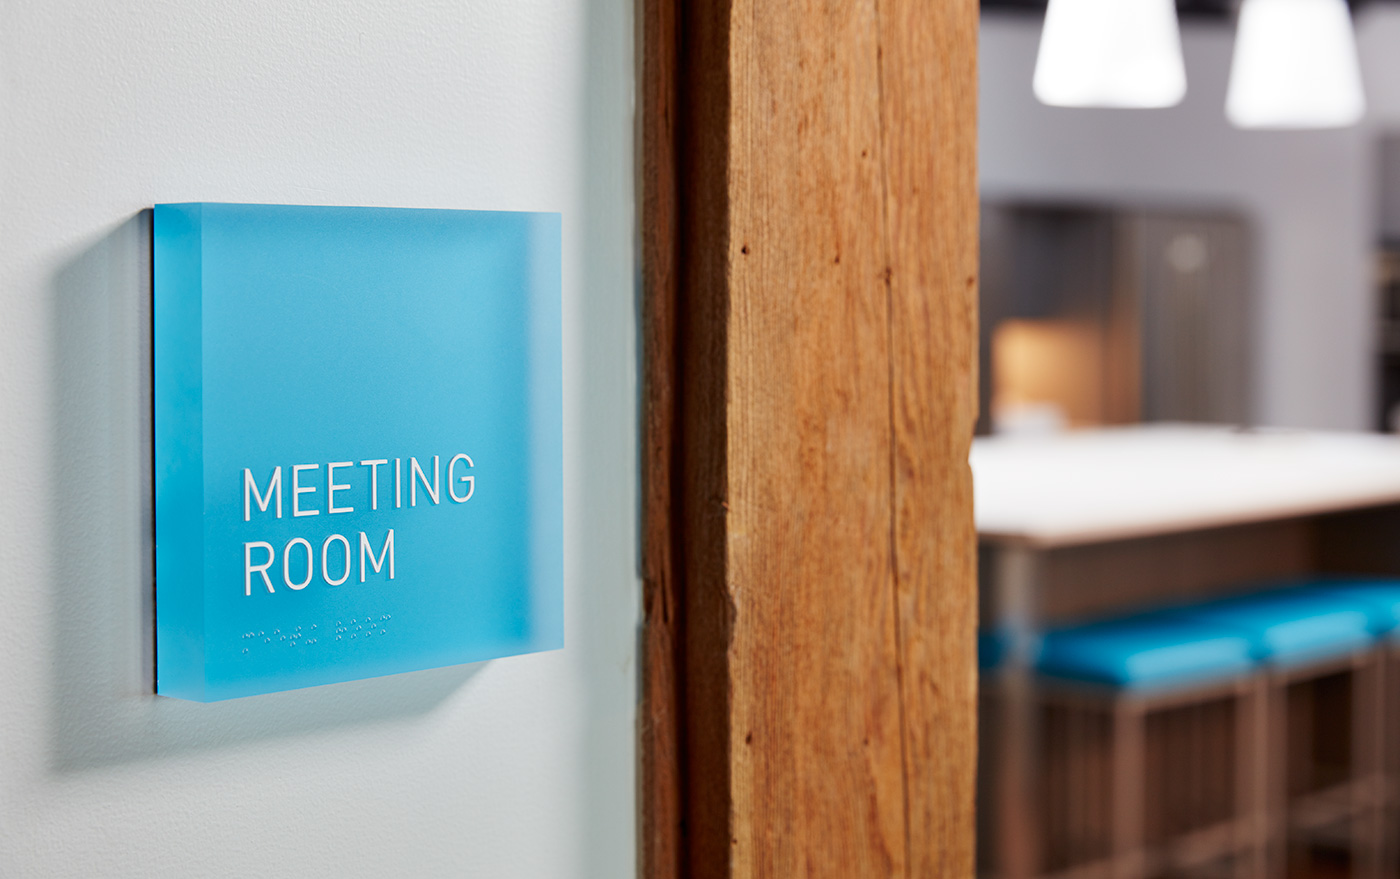 Close up of blue meeting room sign